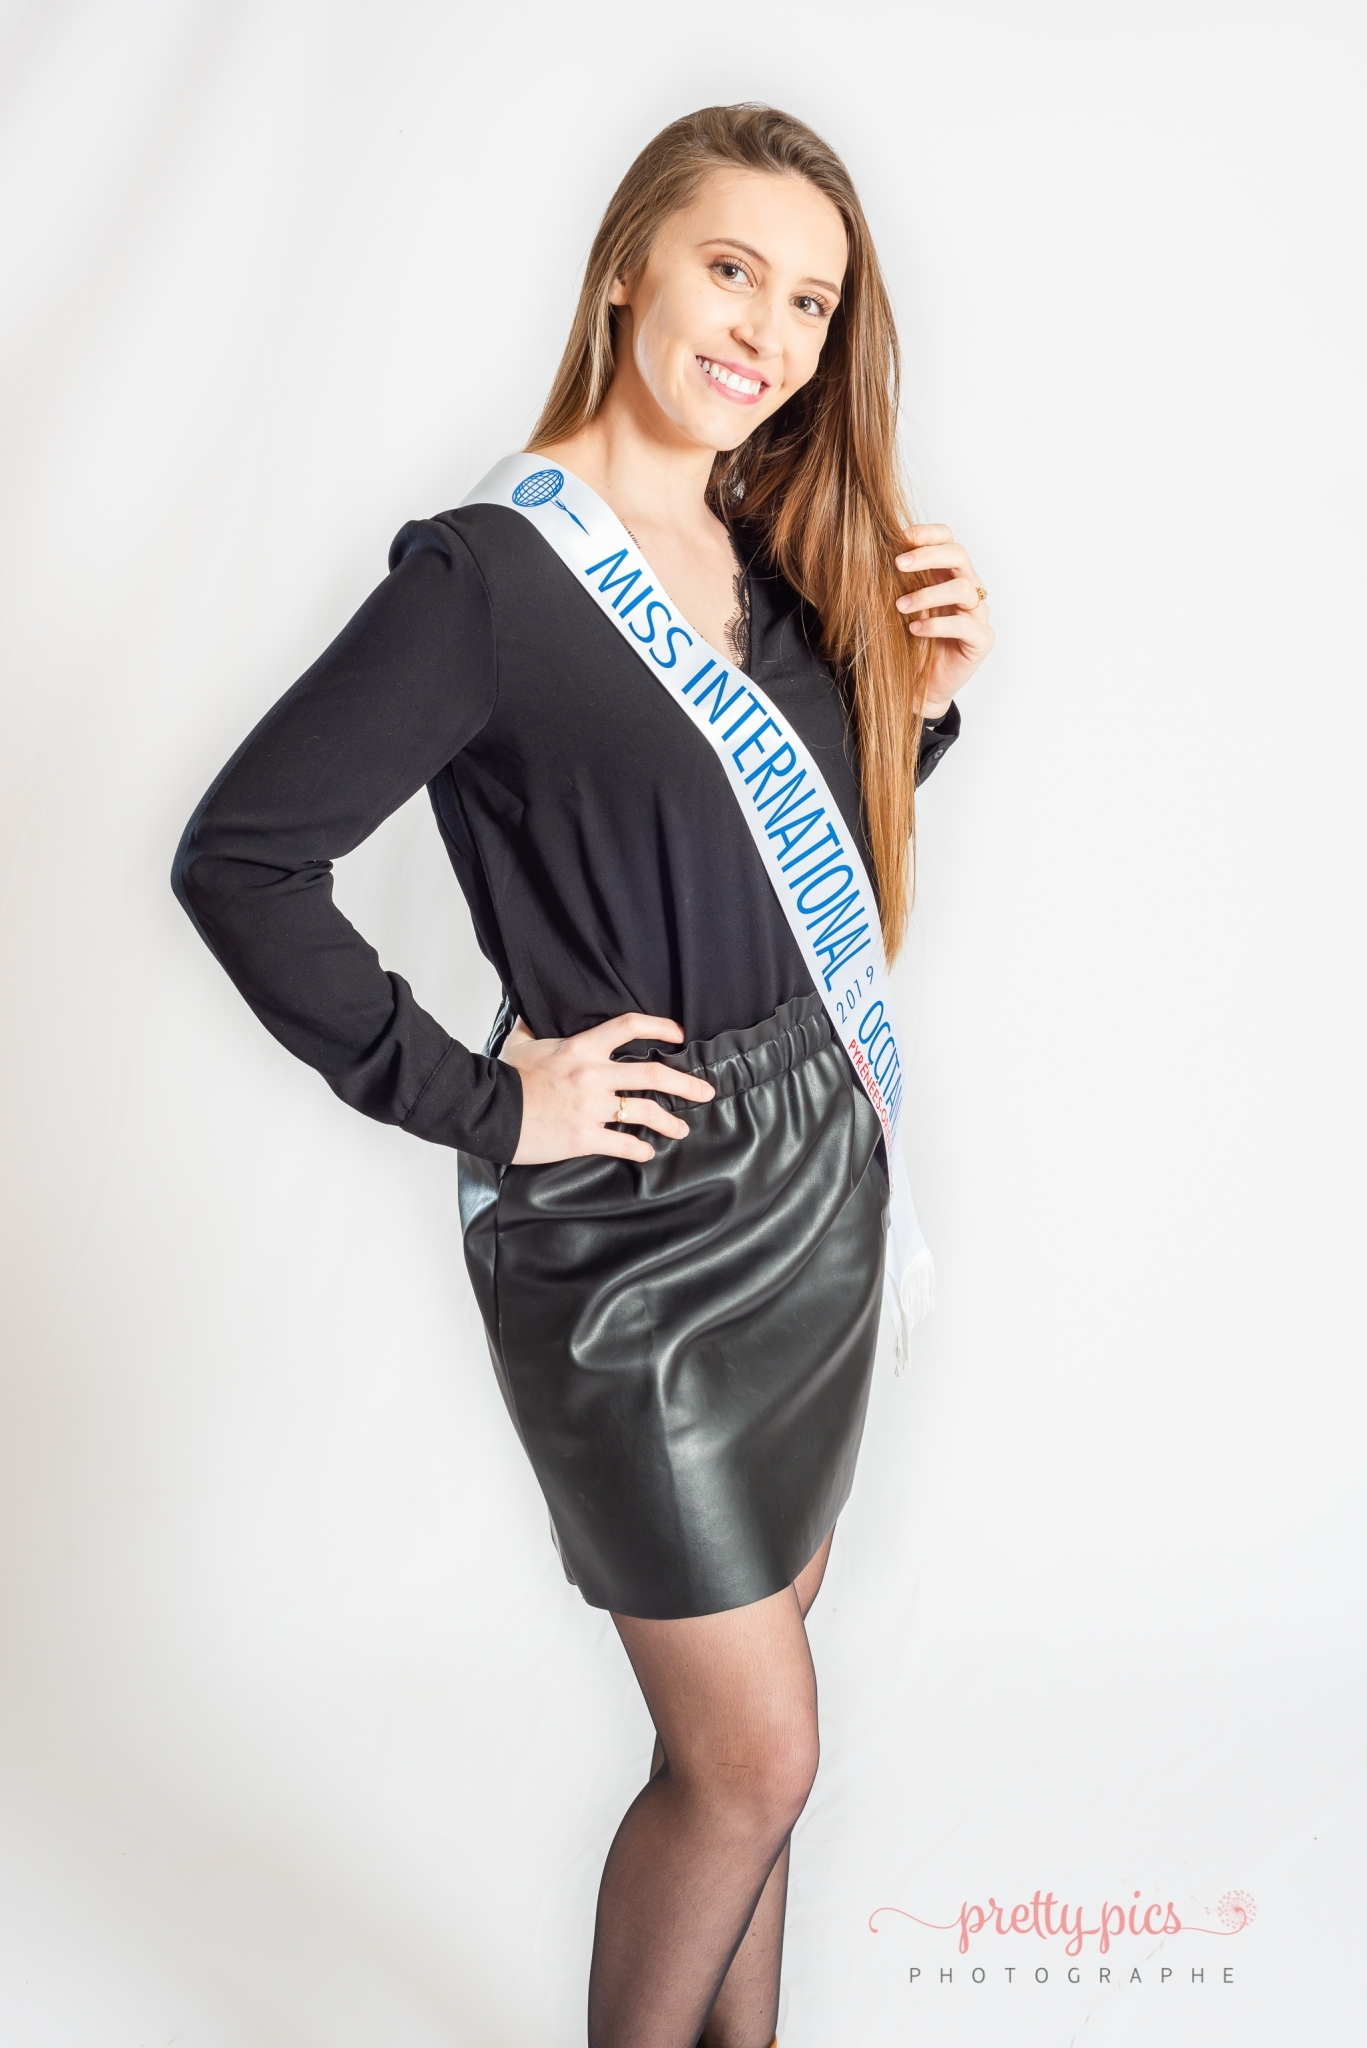 Tiphaine Stégura, Miss International Occitanie 2019